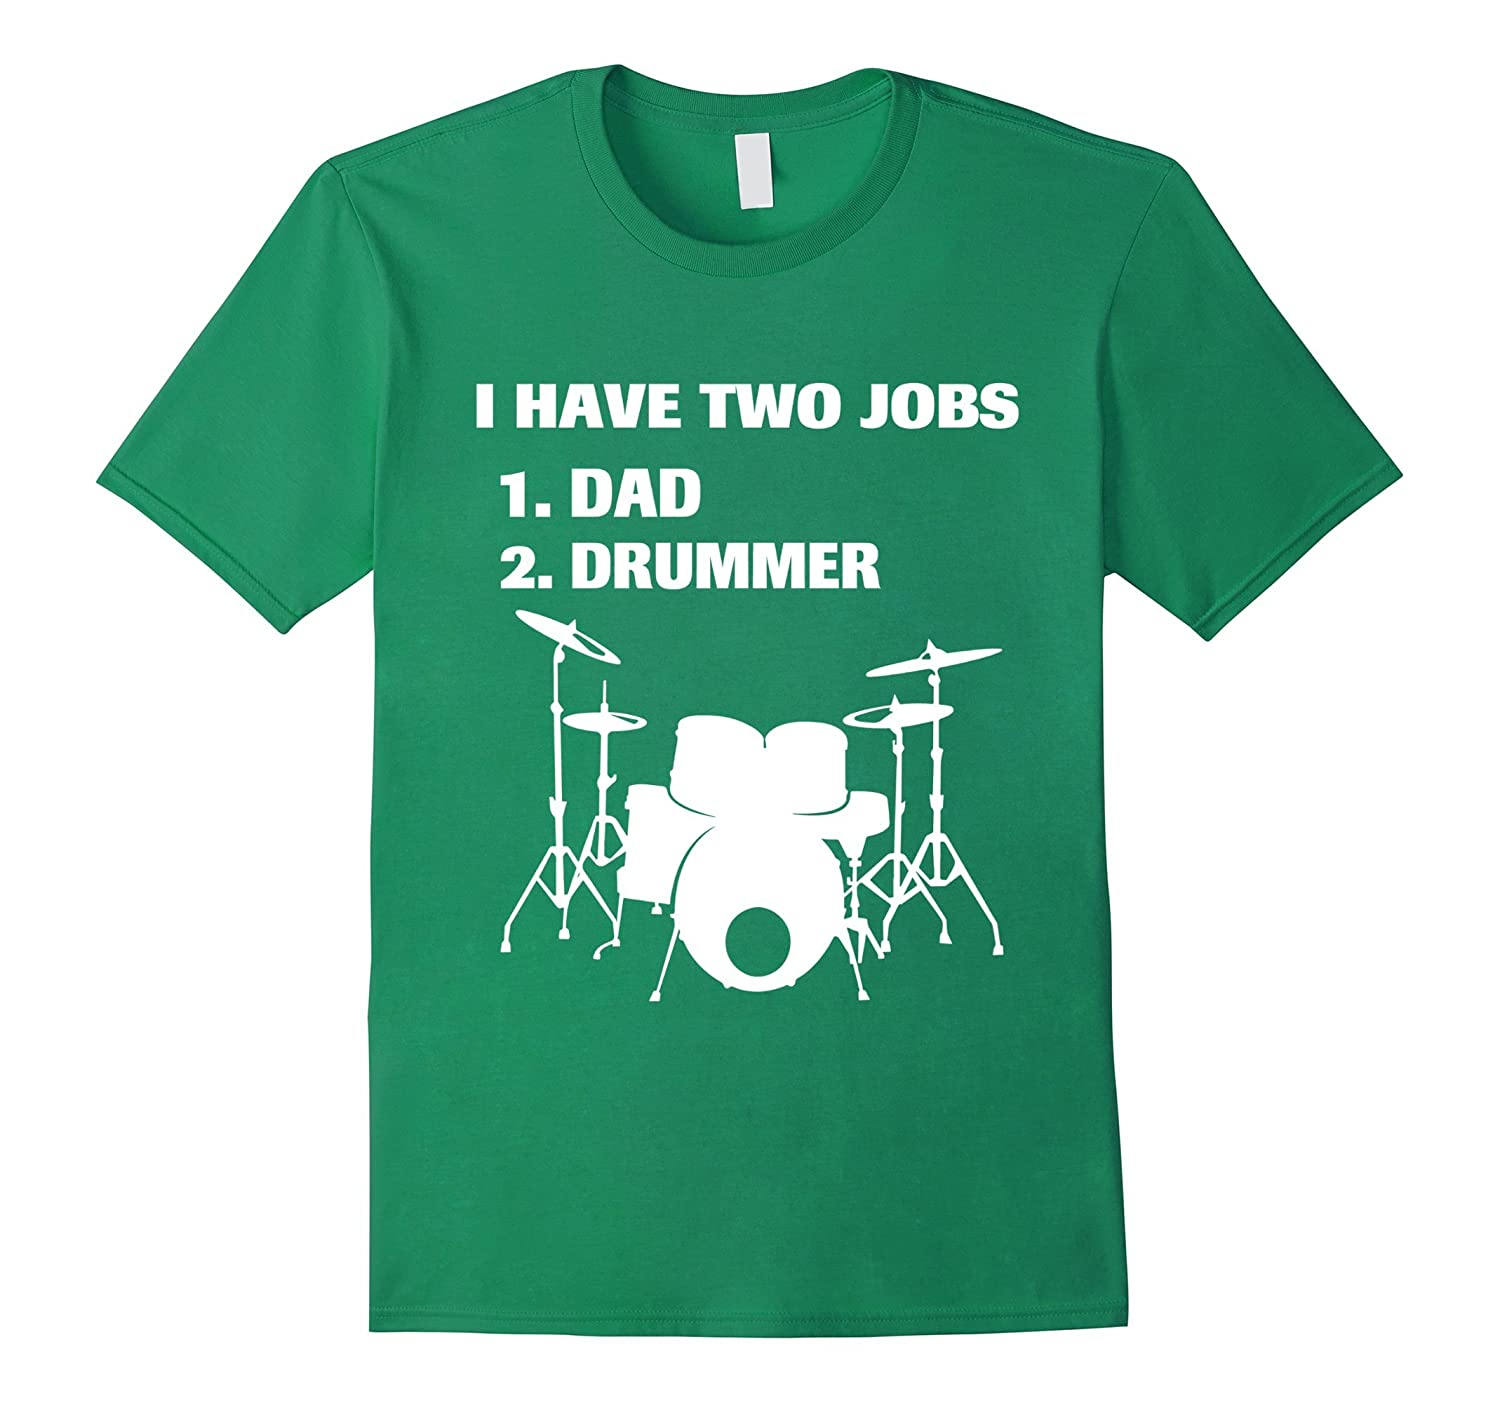 2decde4e Have 2 Jobs Dad and Drummer Tshirt Funny Gift For MenDad-TJ – theteejob